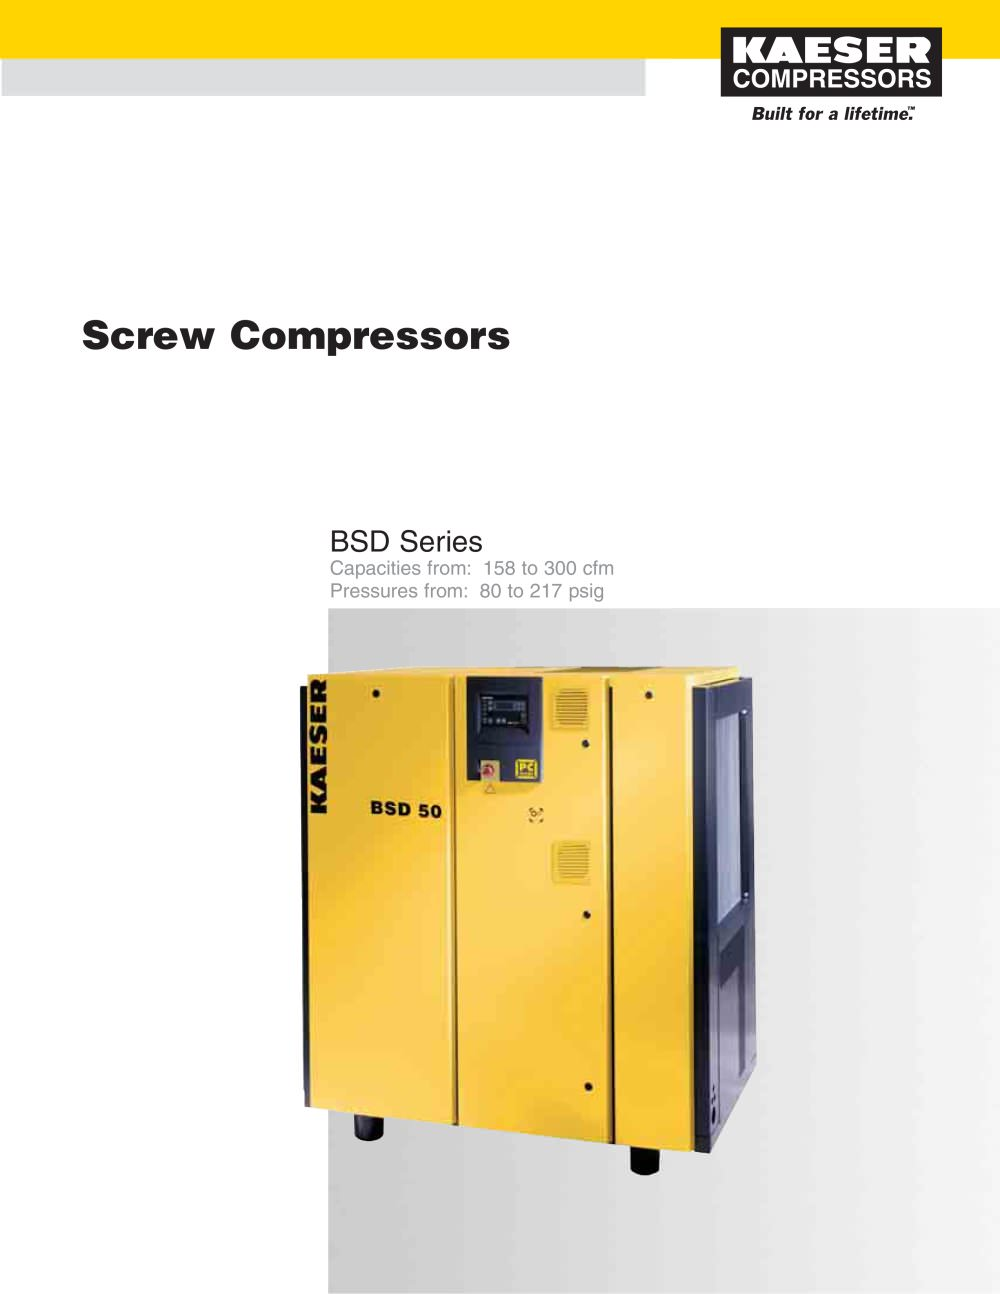 bsd series compressors 176862_1b bsd series compressors kaeser compressors pdf catalogue  at gsmportal.co